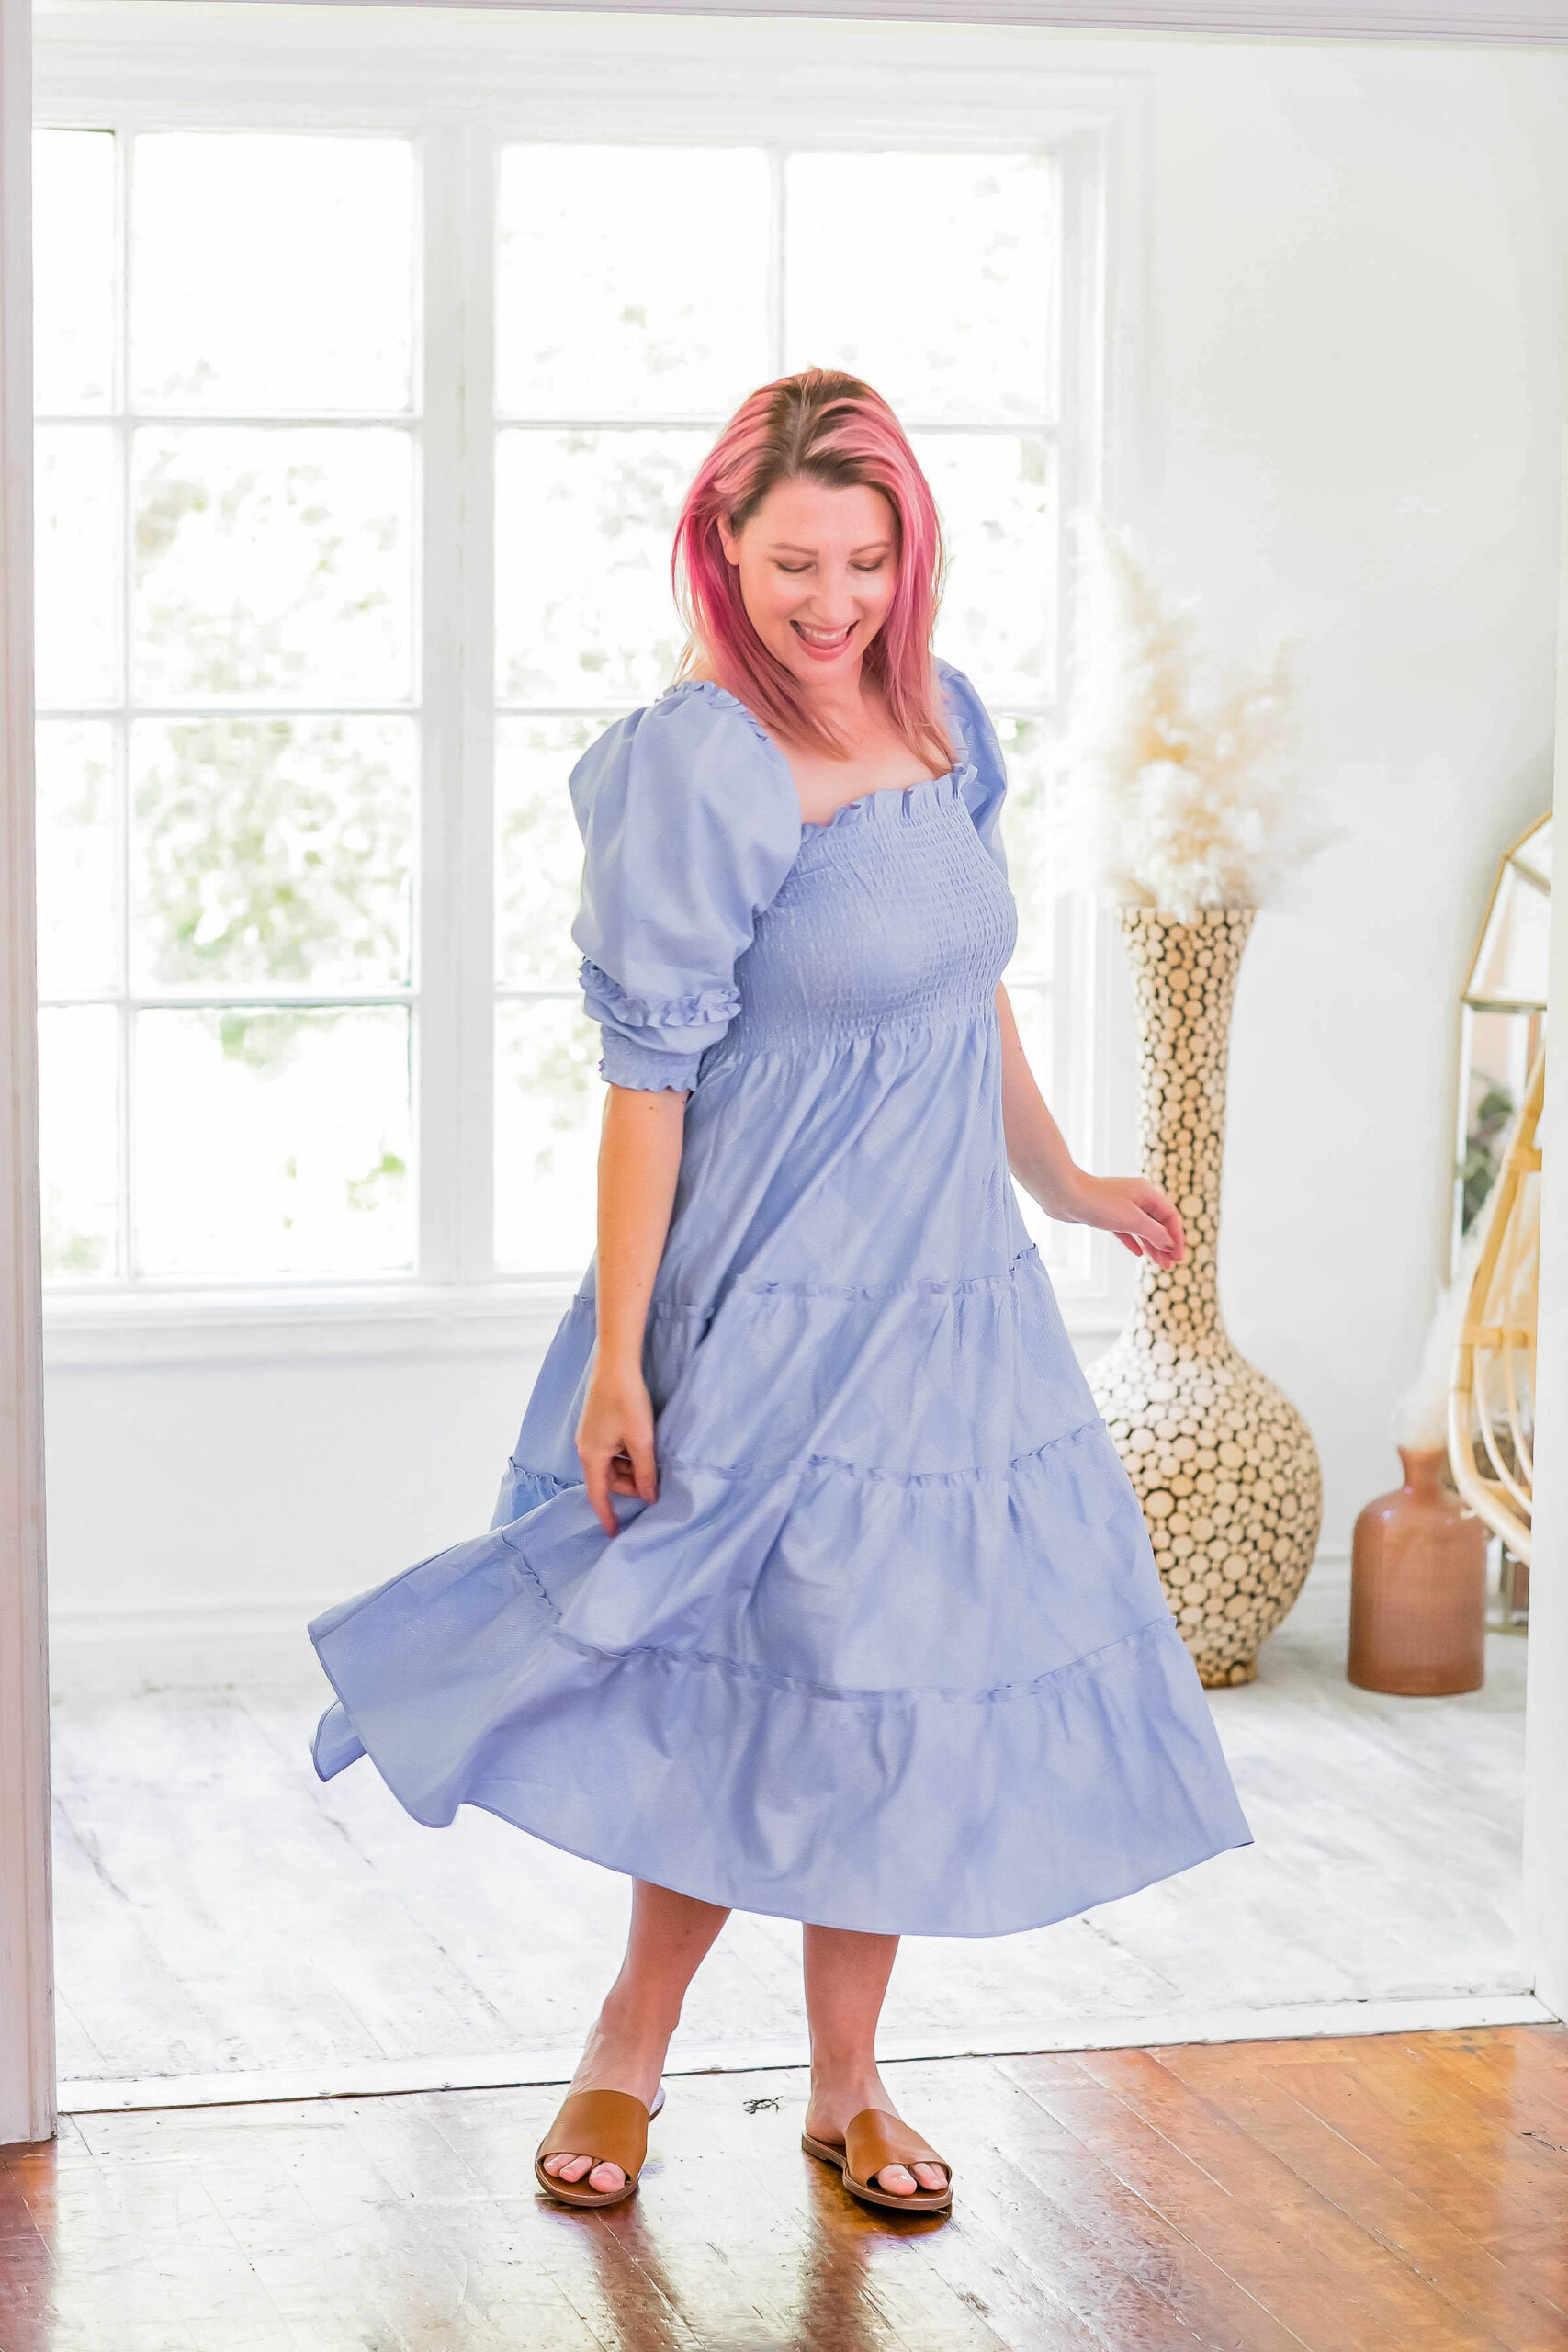 Looking for the best spring dresses? This Hill House Home dress is perfection!!